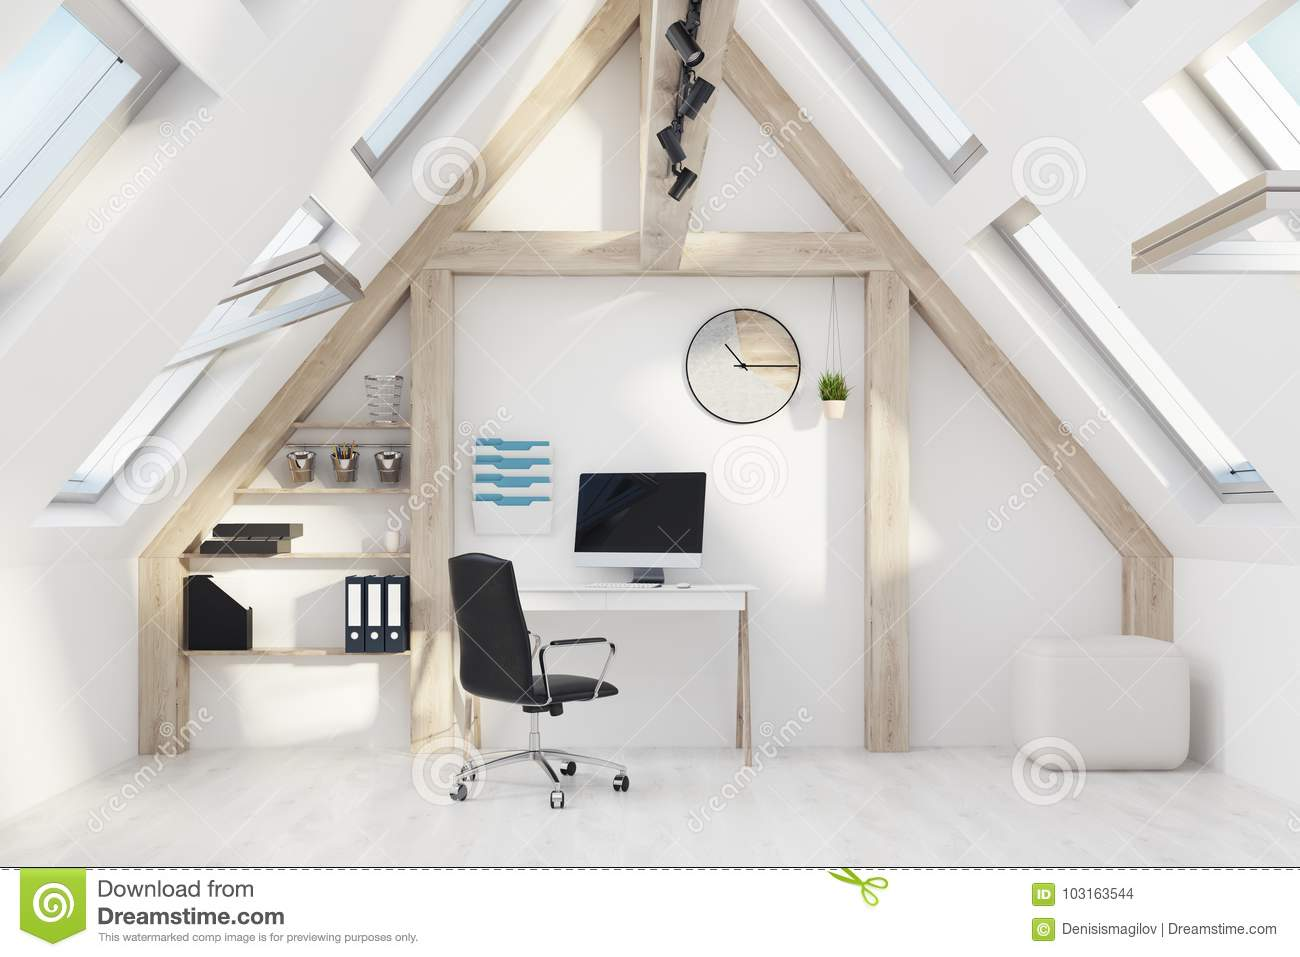 Home office in an attic stock illustration. Illustration of ...